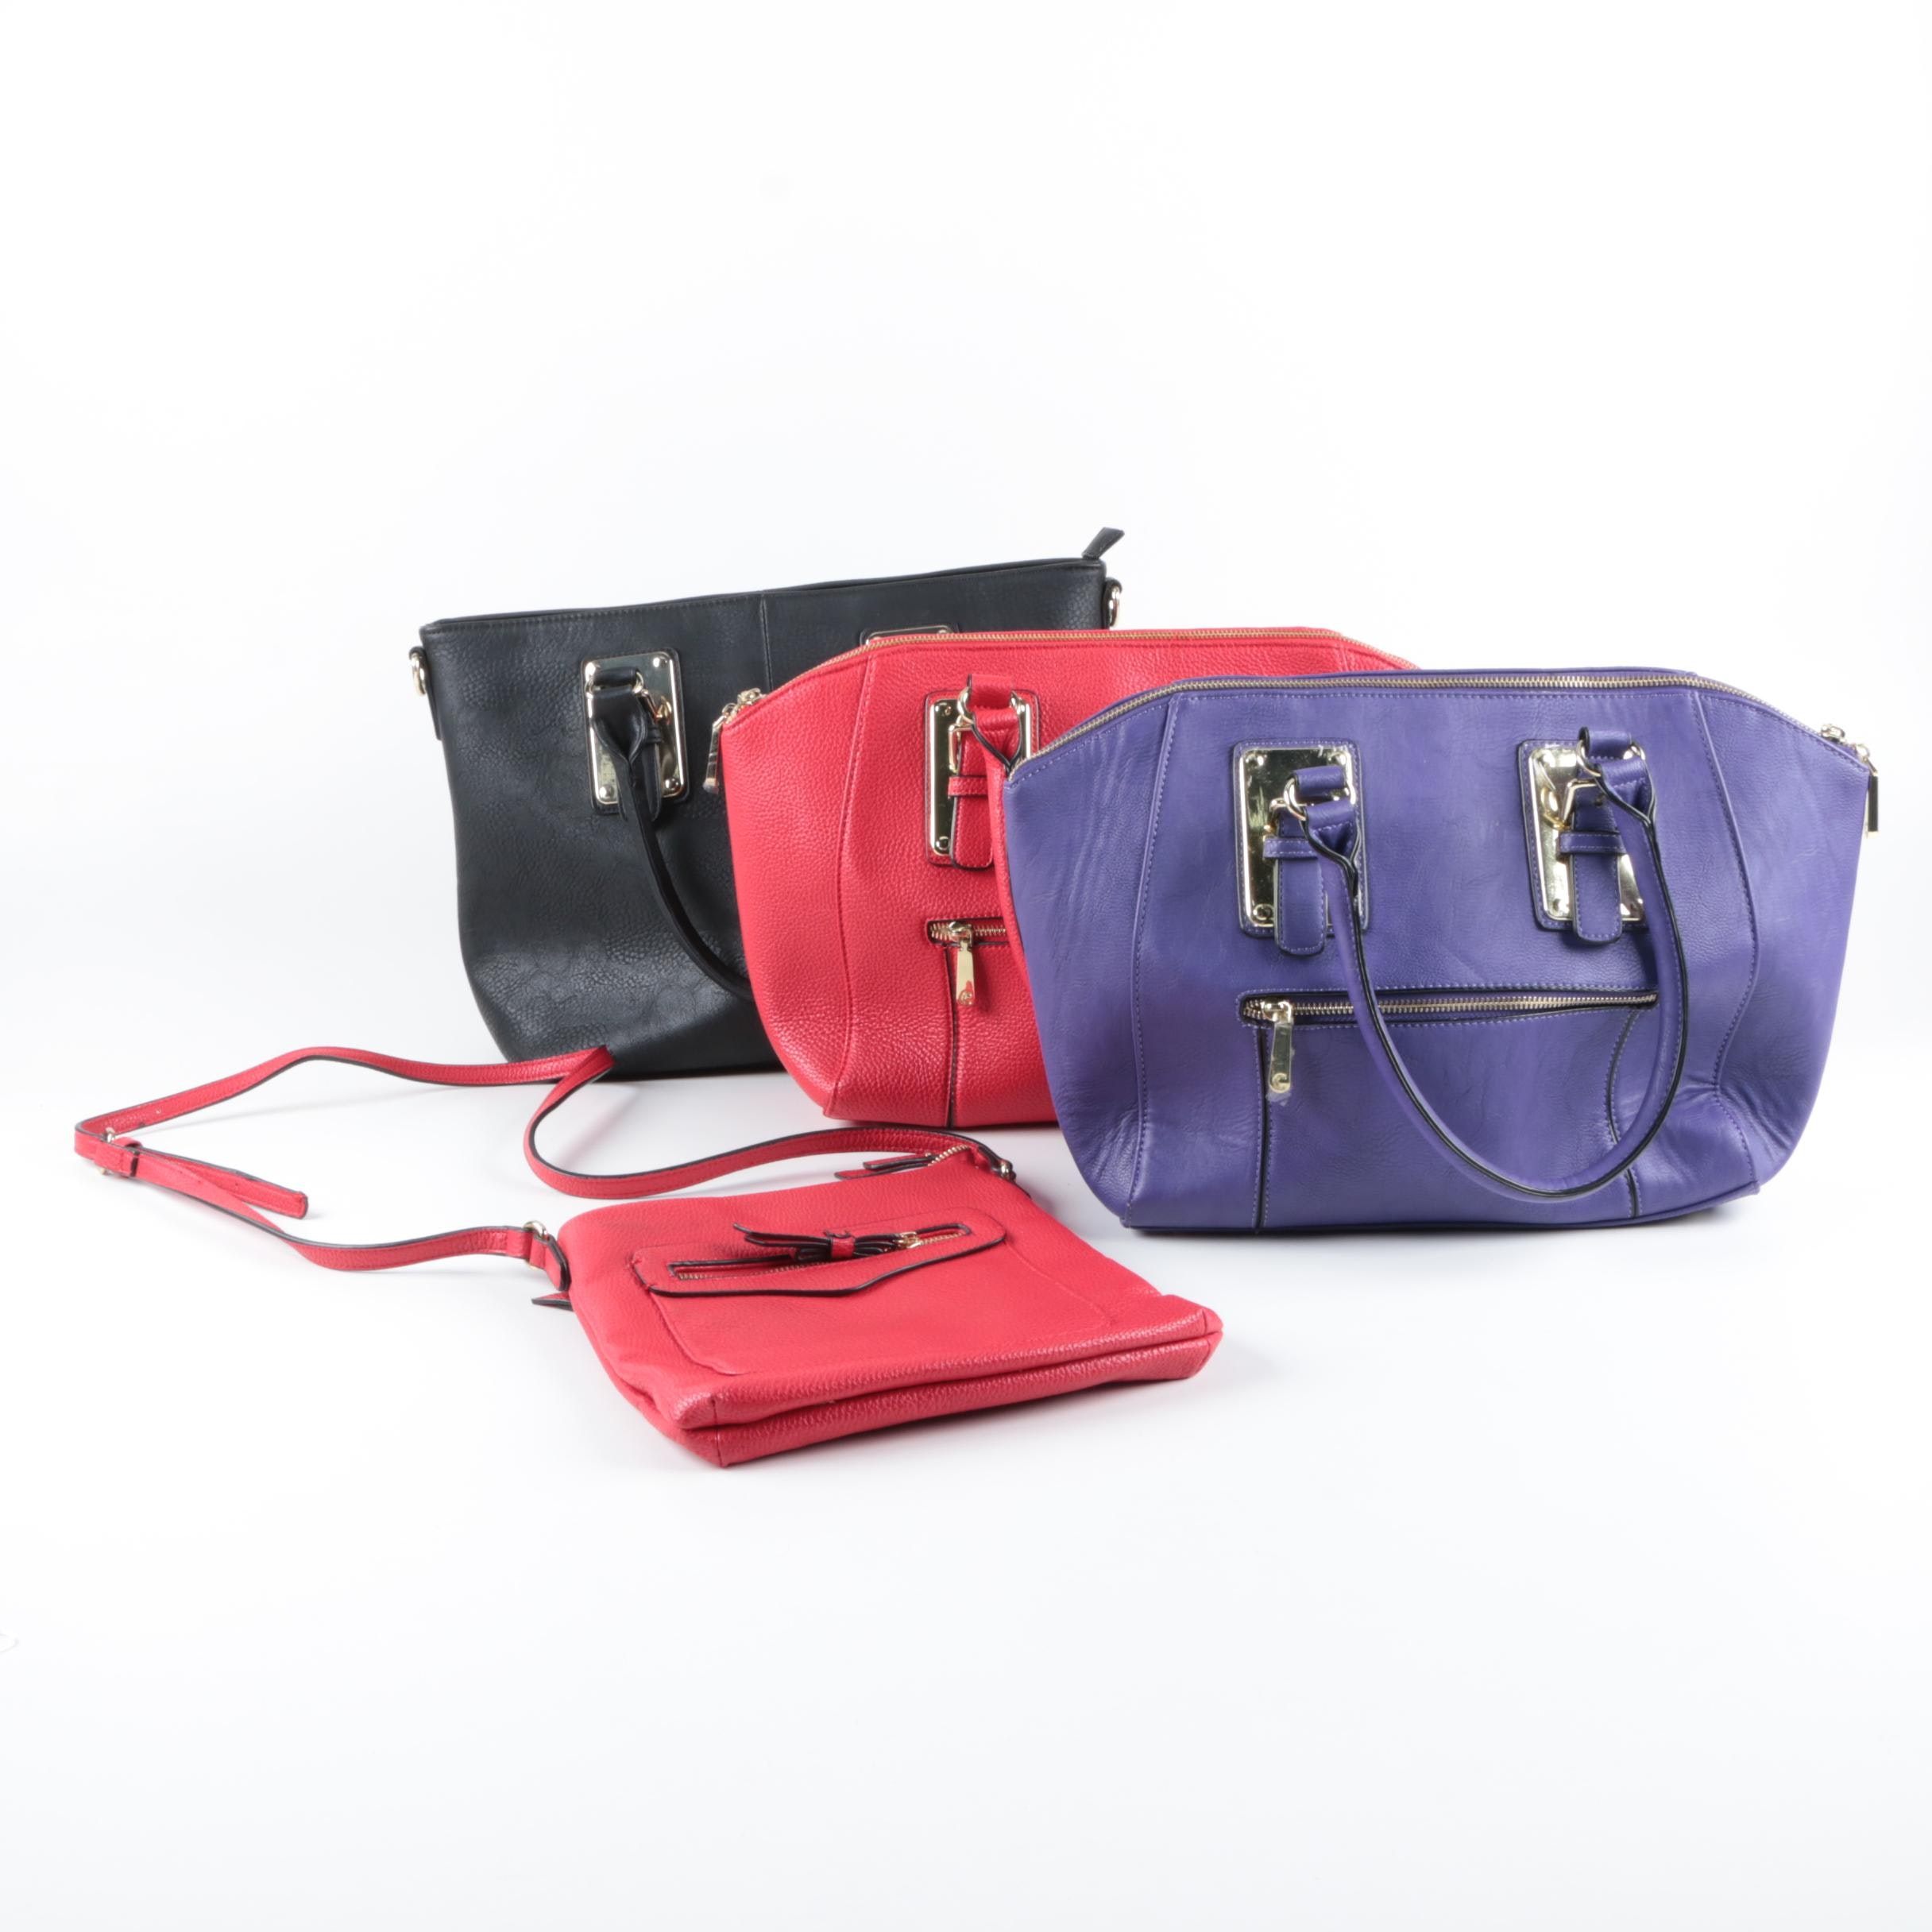 Charming Charlie Pebbled Leather Handbags and Cross Body